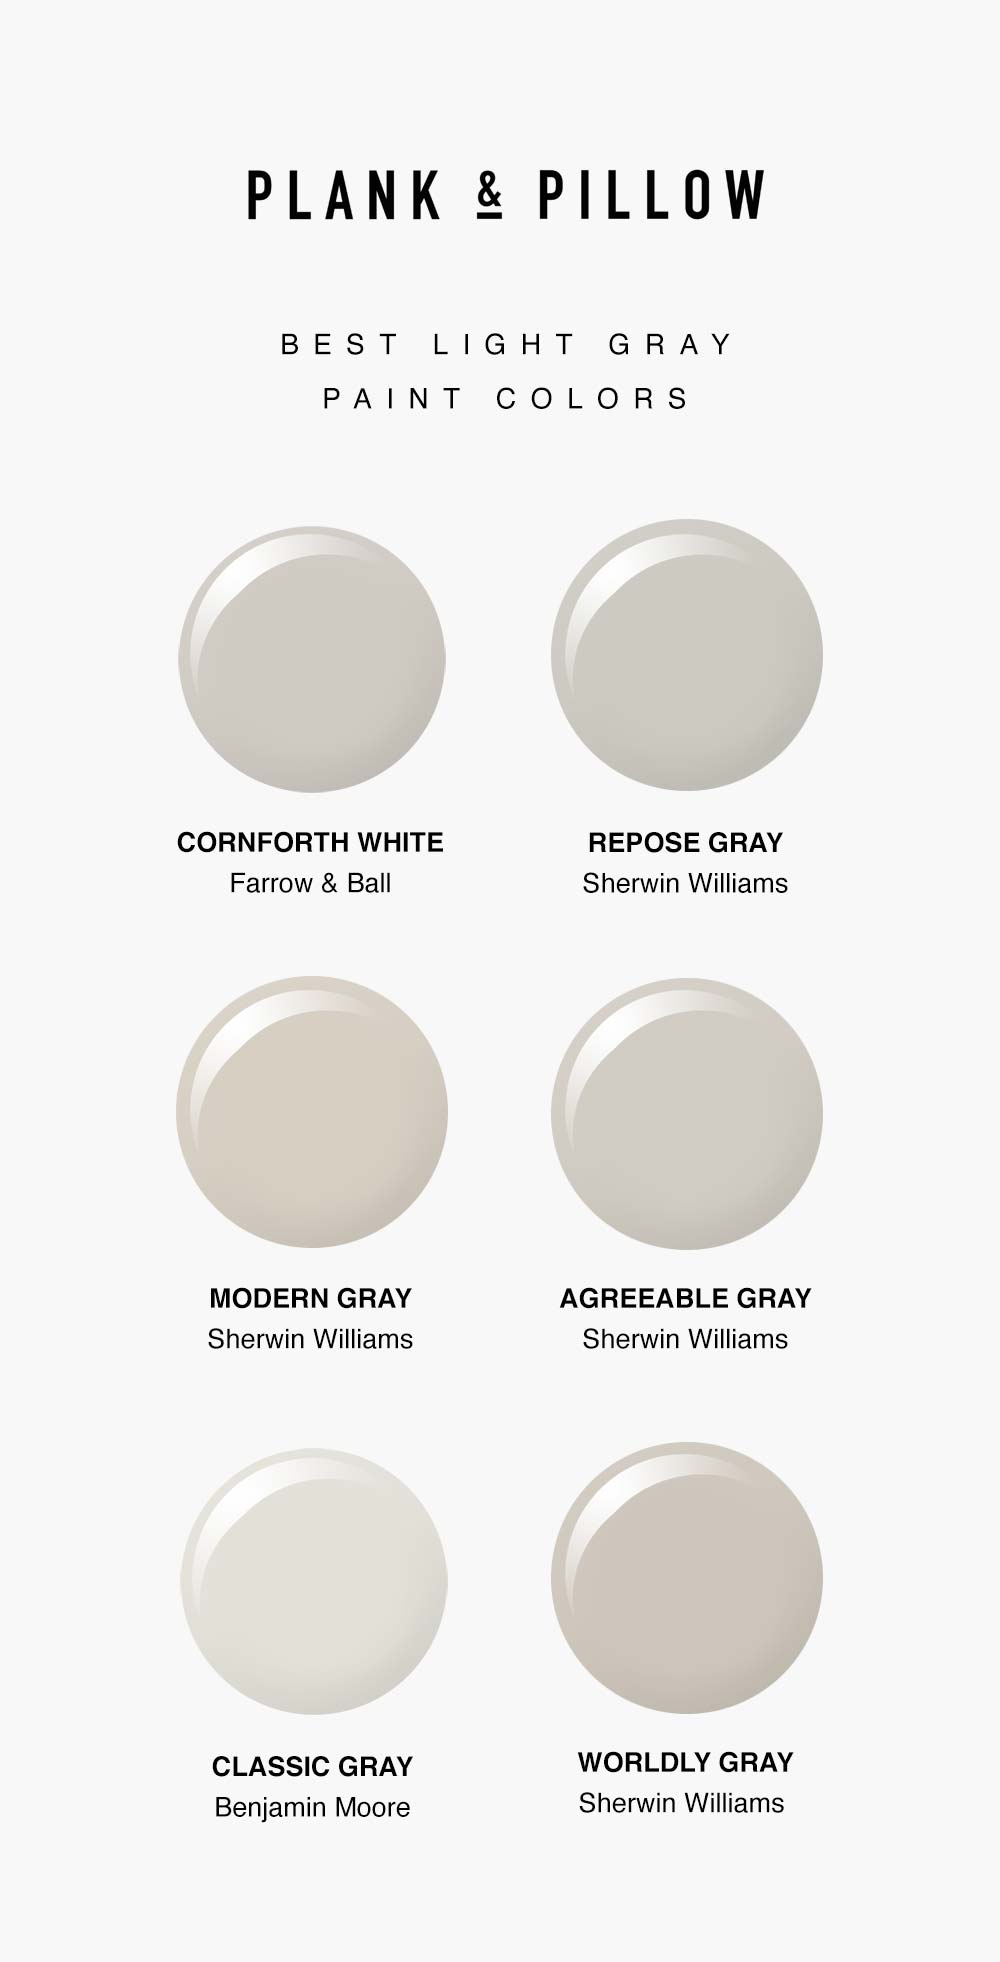 The Best Light Gray Paint Colors   Plank and Pillow